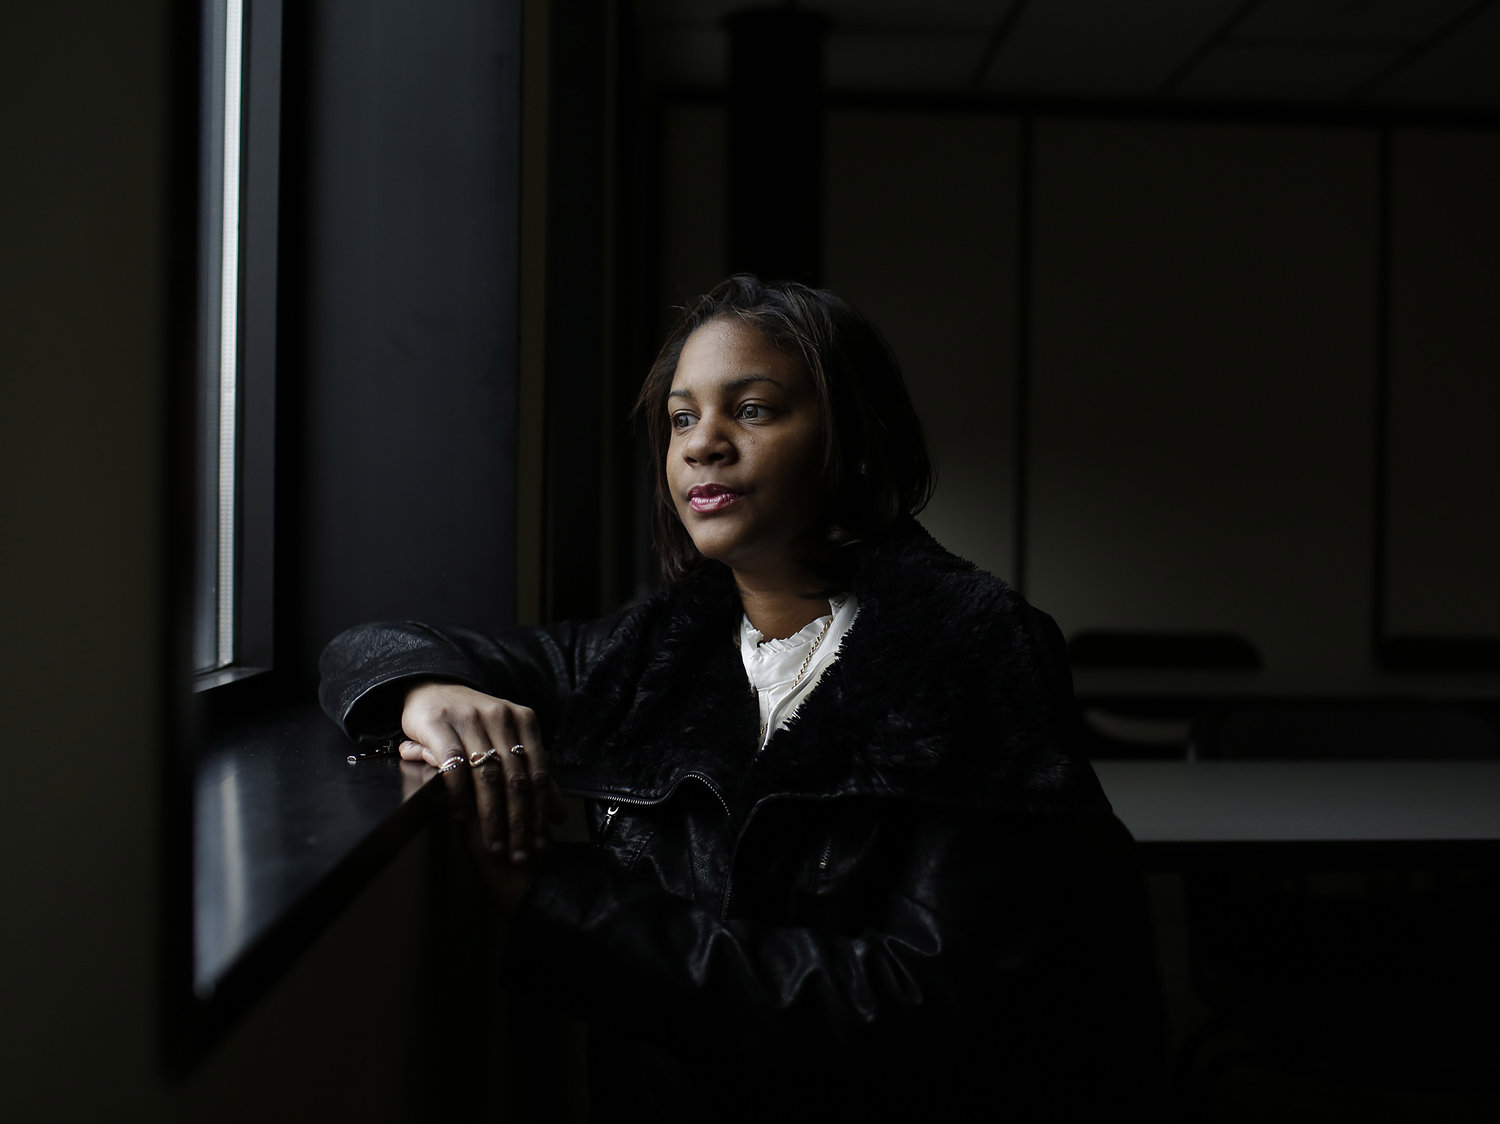 When Jasmine Uqdah aged out of the foster care system in 2008, she didn't have a job, a checking account or a car. She did have a college acceptance letter — but no money to pay for schooling. (Joshua Lott for NPR)